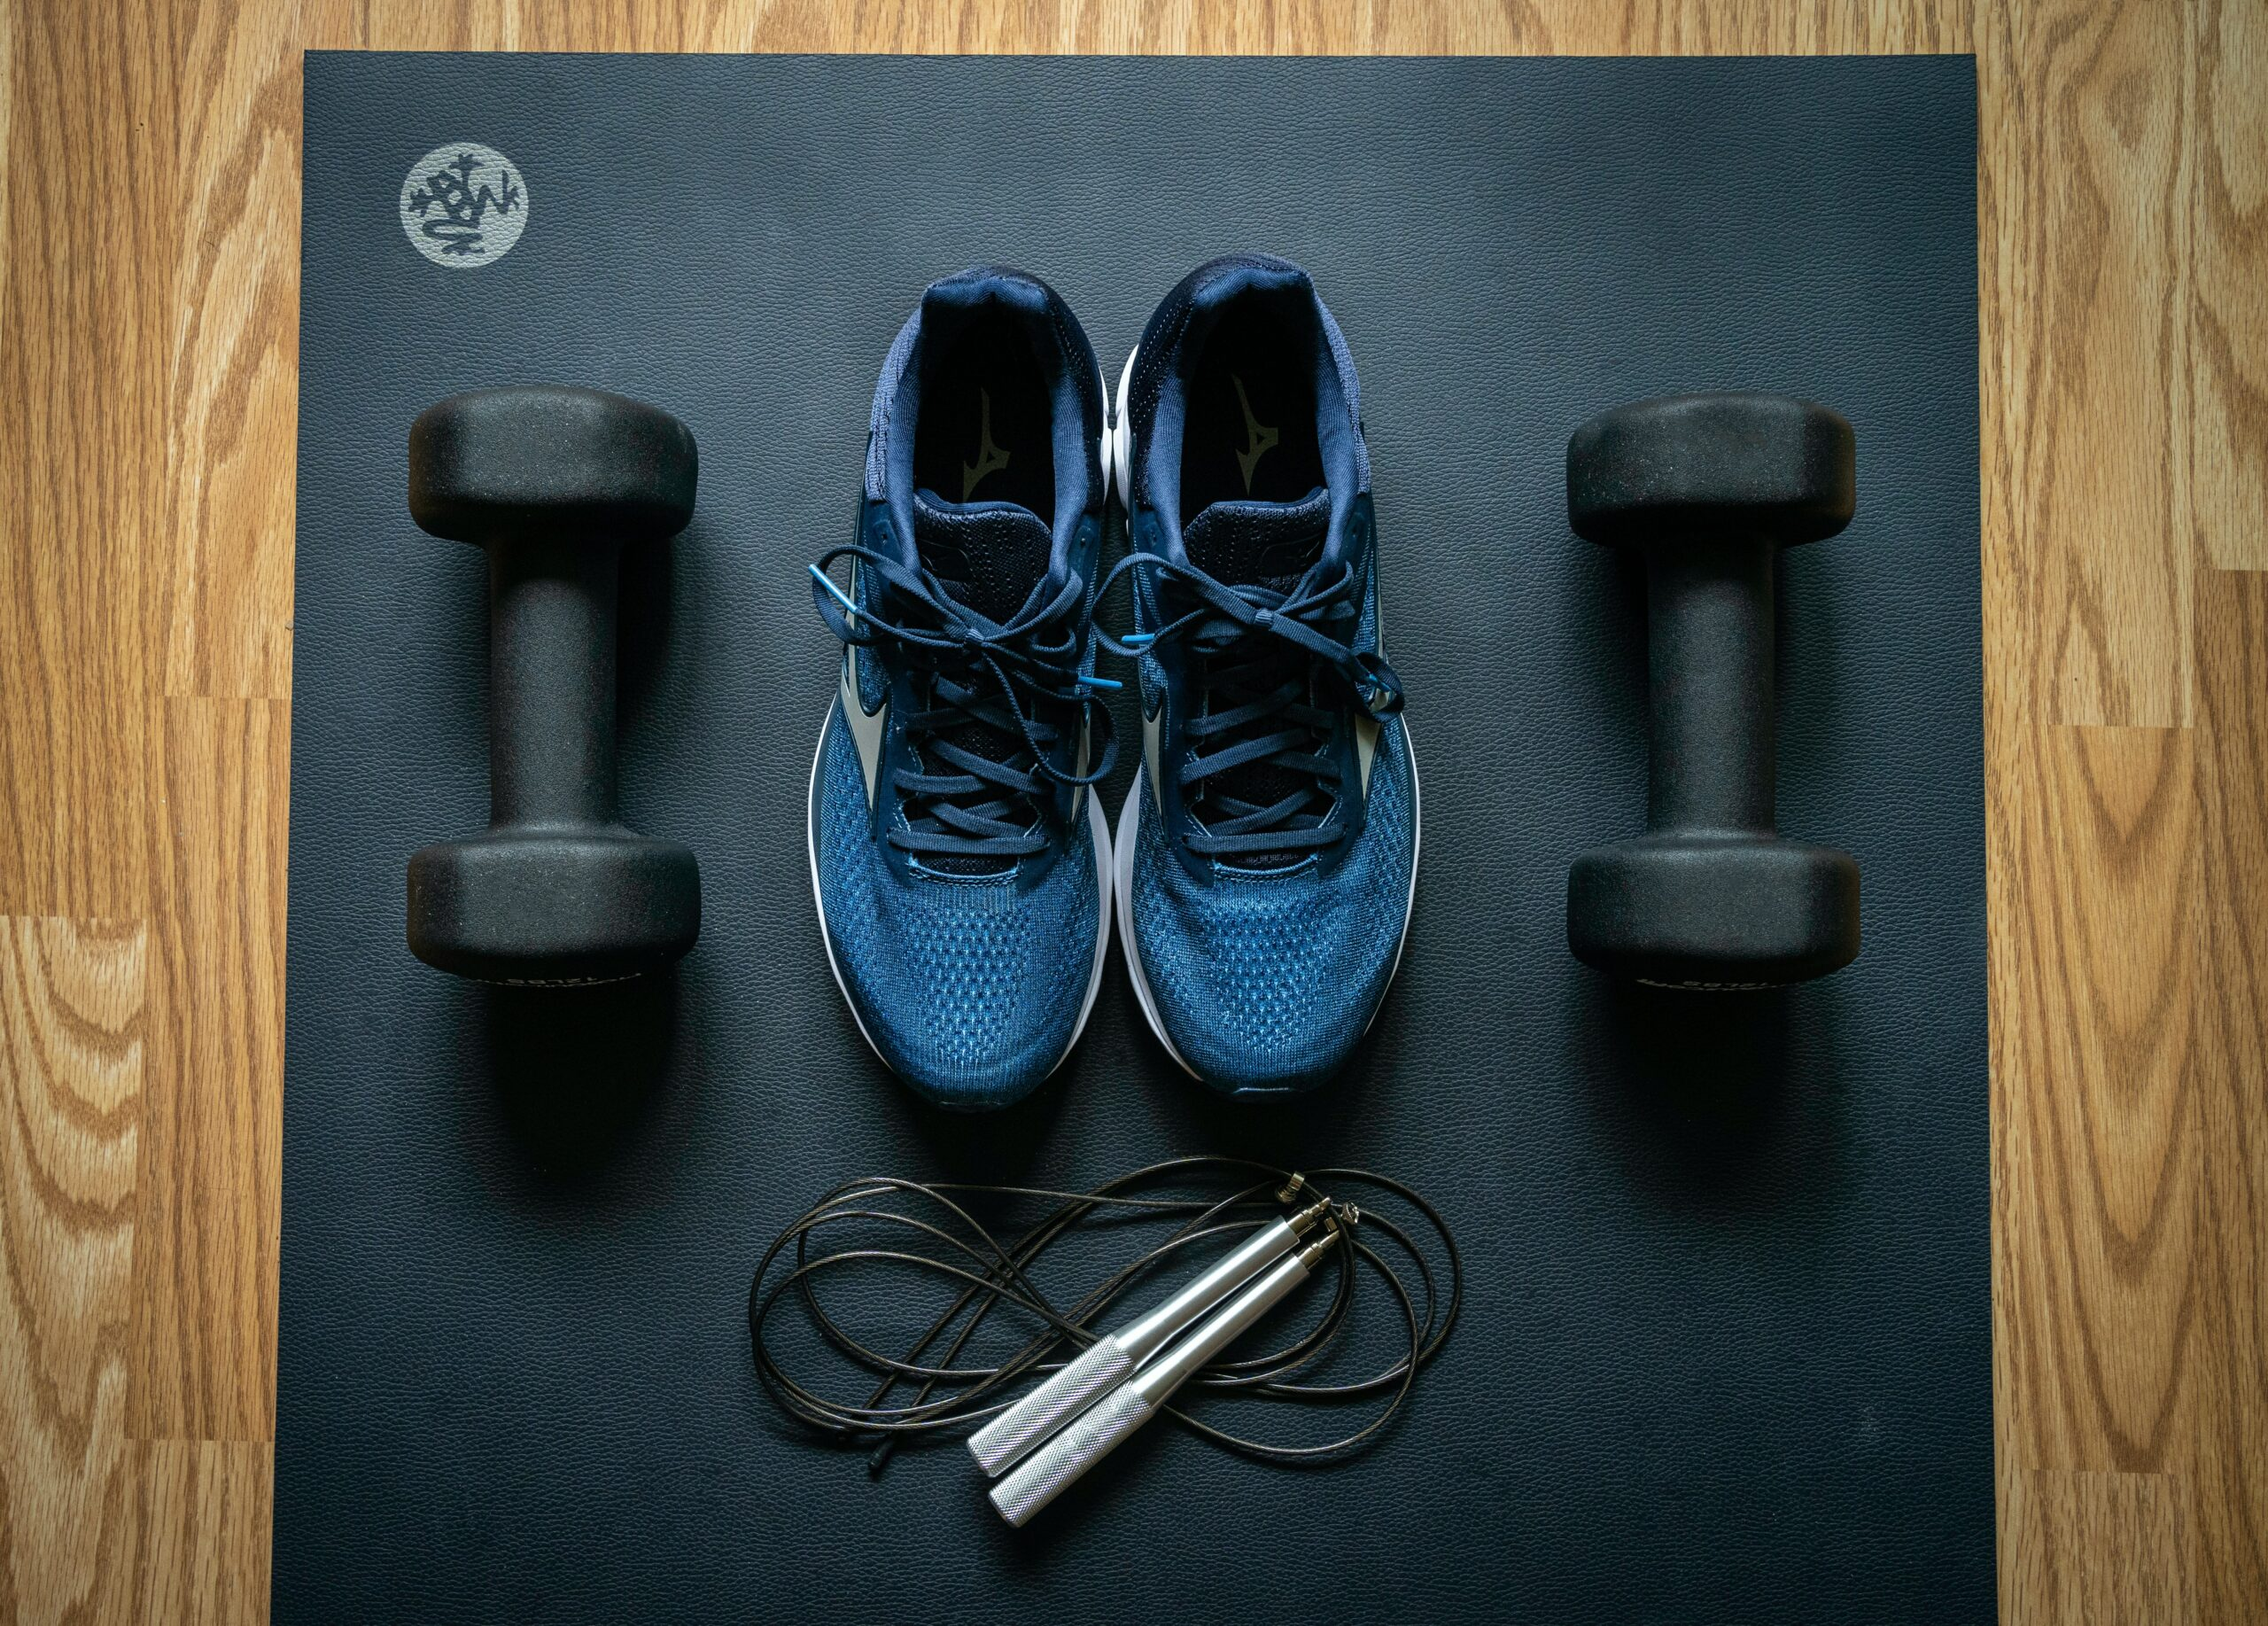 navy blue shoes, black weights, and jump rope on a black exercise matt